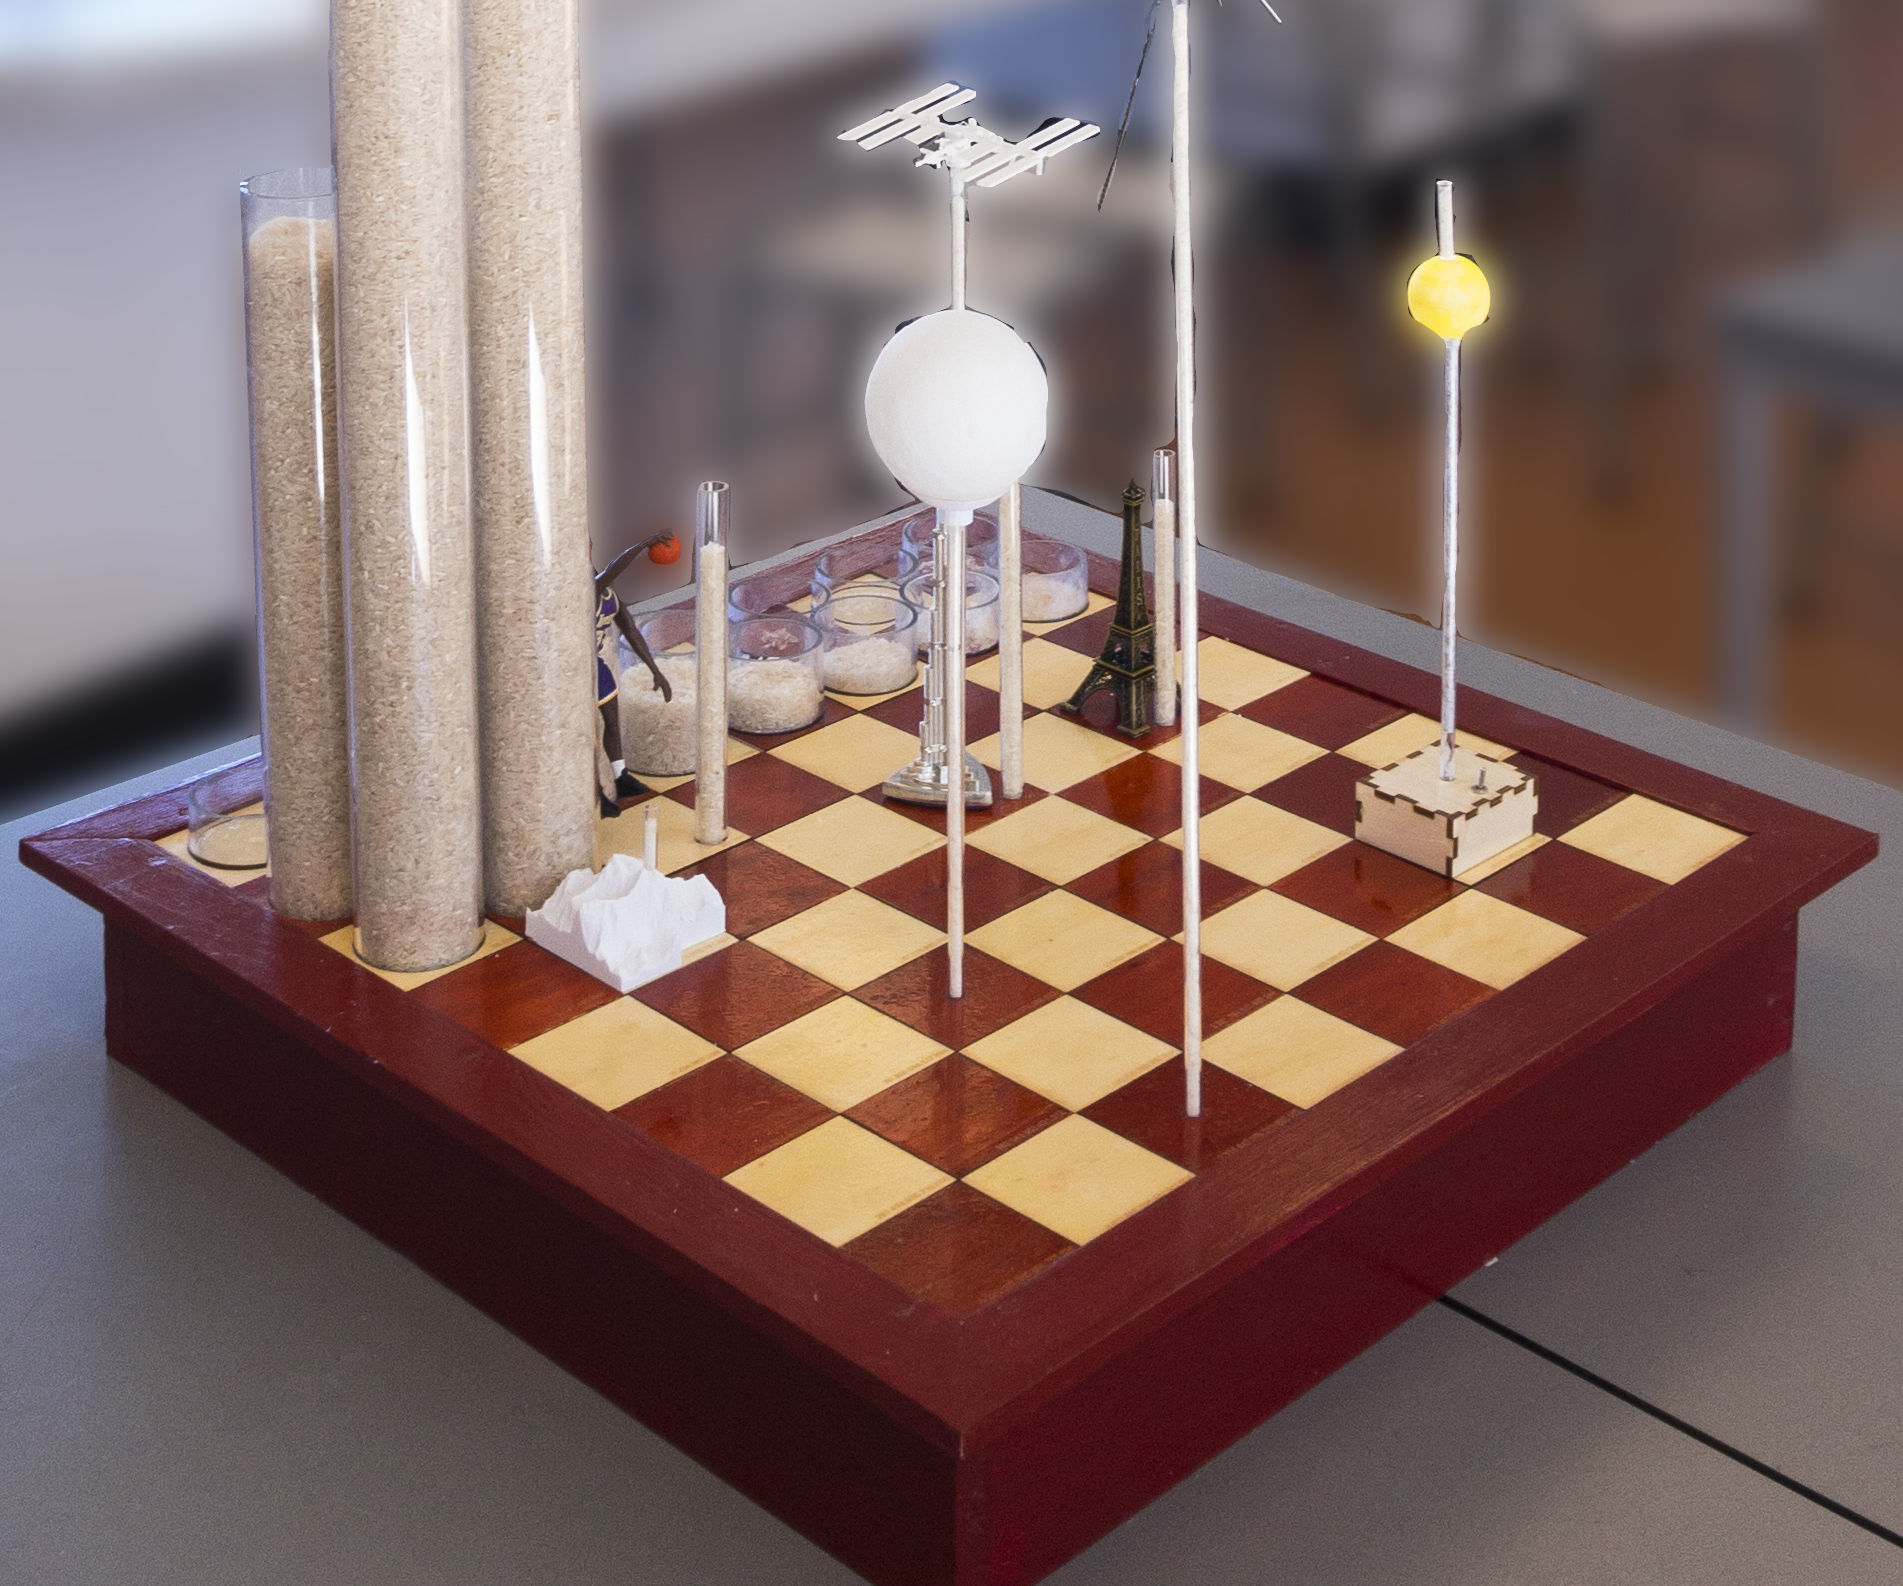 Chess Board Full of Rice: Exponential Growth